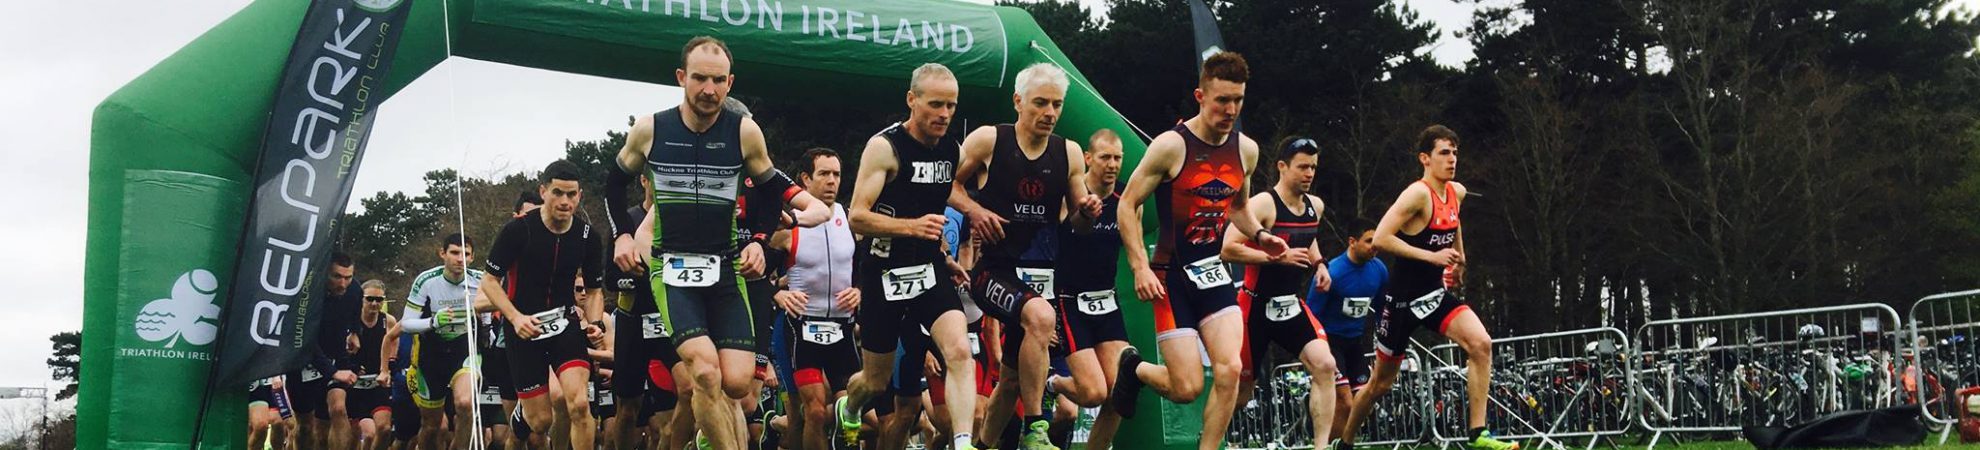 Best Triathlons Ireland